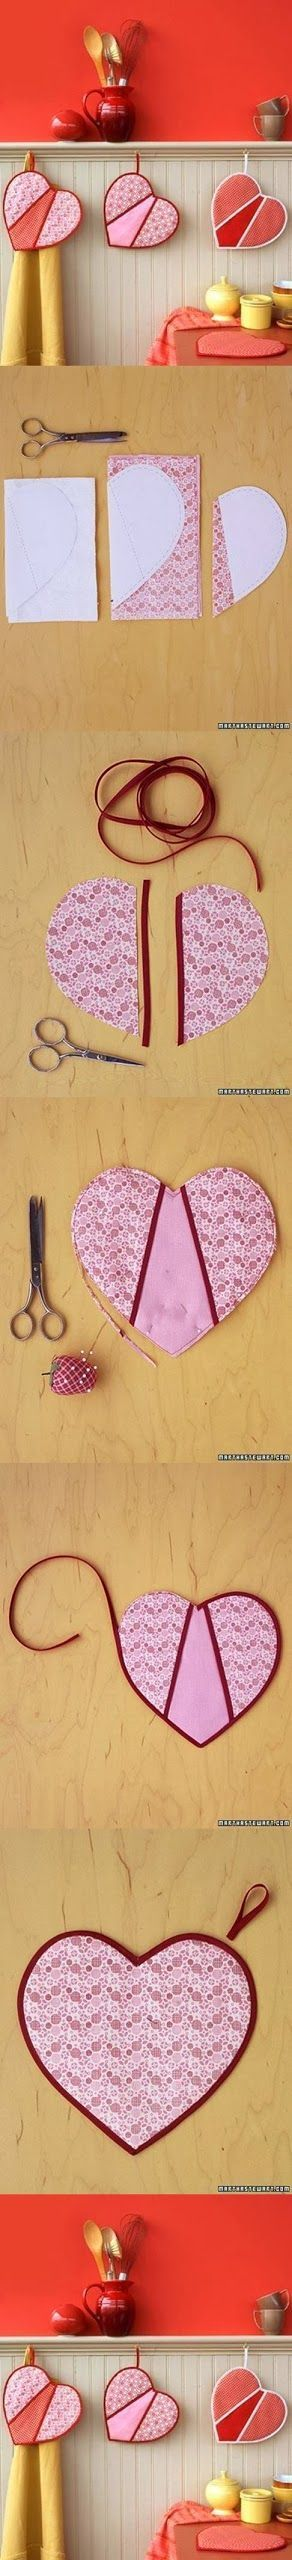 DIY : Heart Shaped Pot Holders | DIY & Crafts Tutorials...♥ Deniz ♥